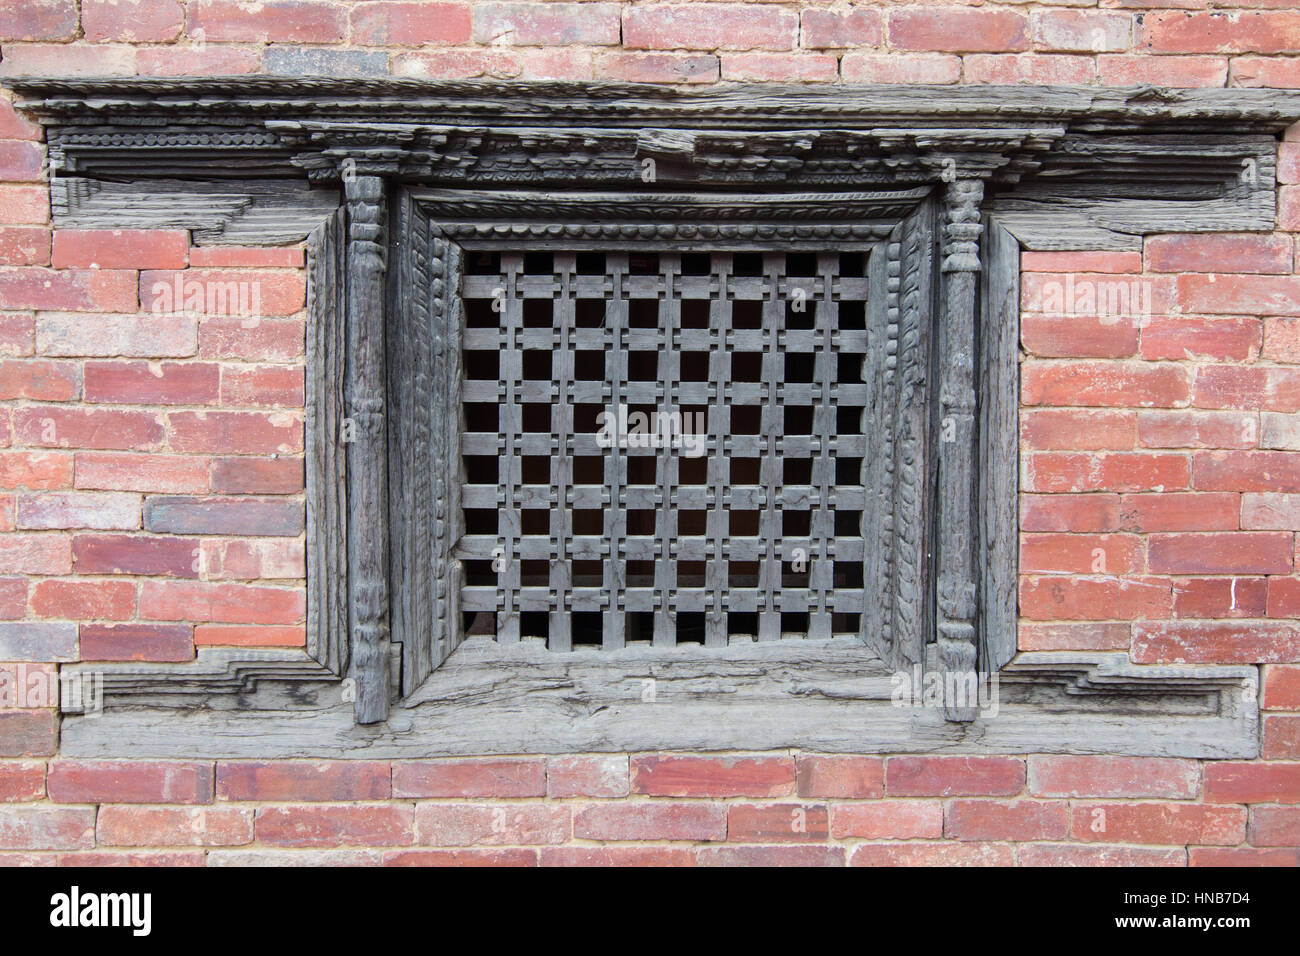 Delicate traditional wooden lattice-work window on a brick building in Bhaktapur, Kathmandu - Stock Image